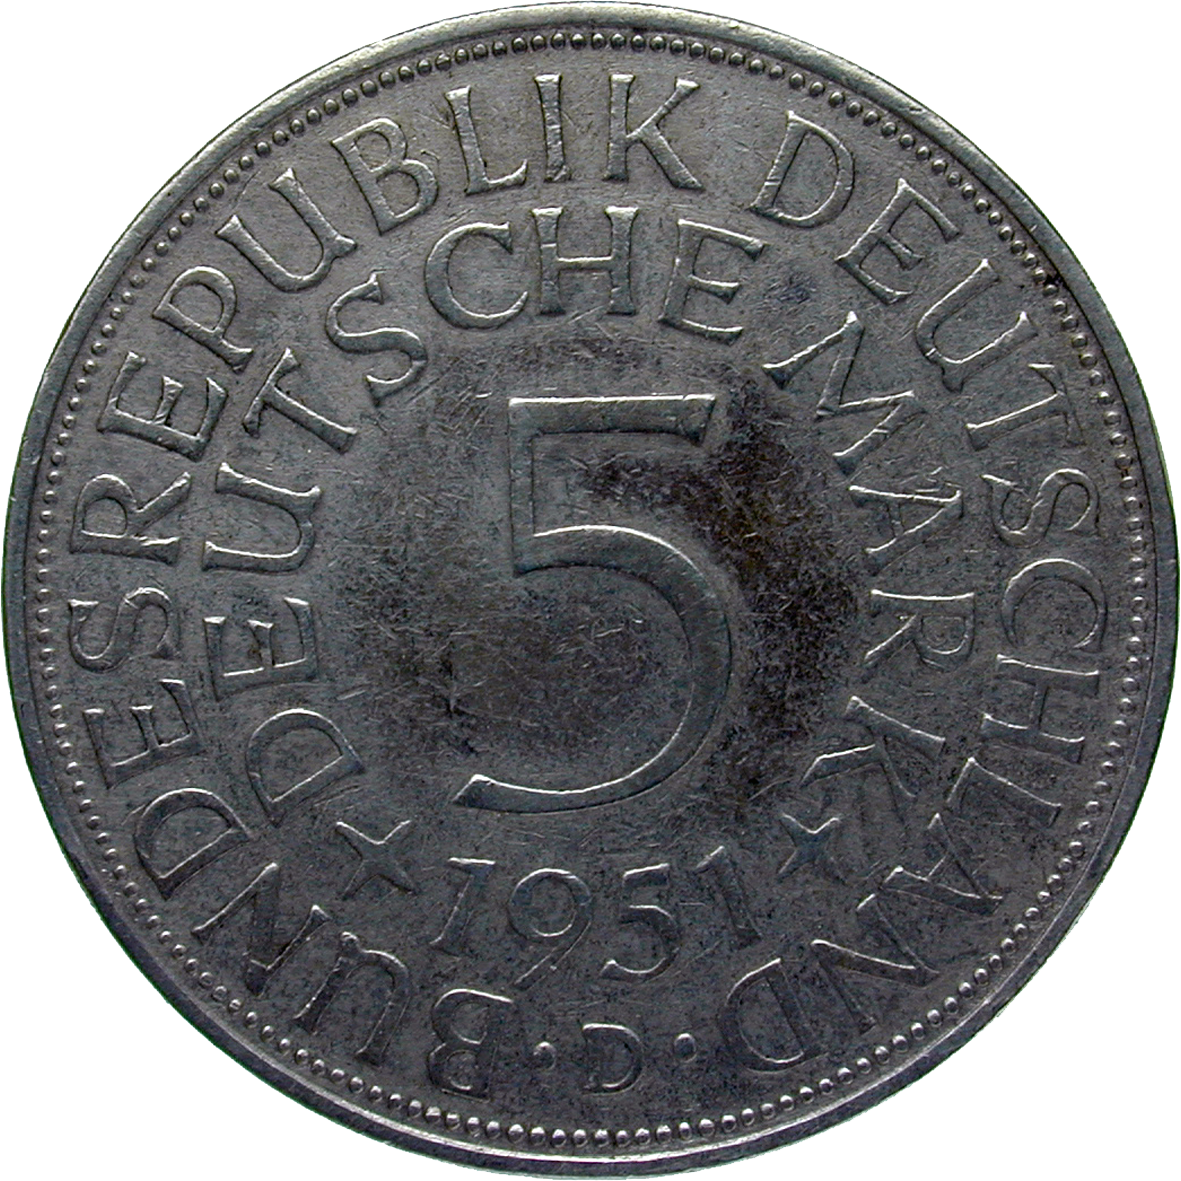 Federal Republic of Germany, 5 Deutsche Mark 1951 (obverse)